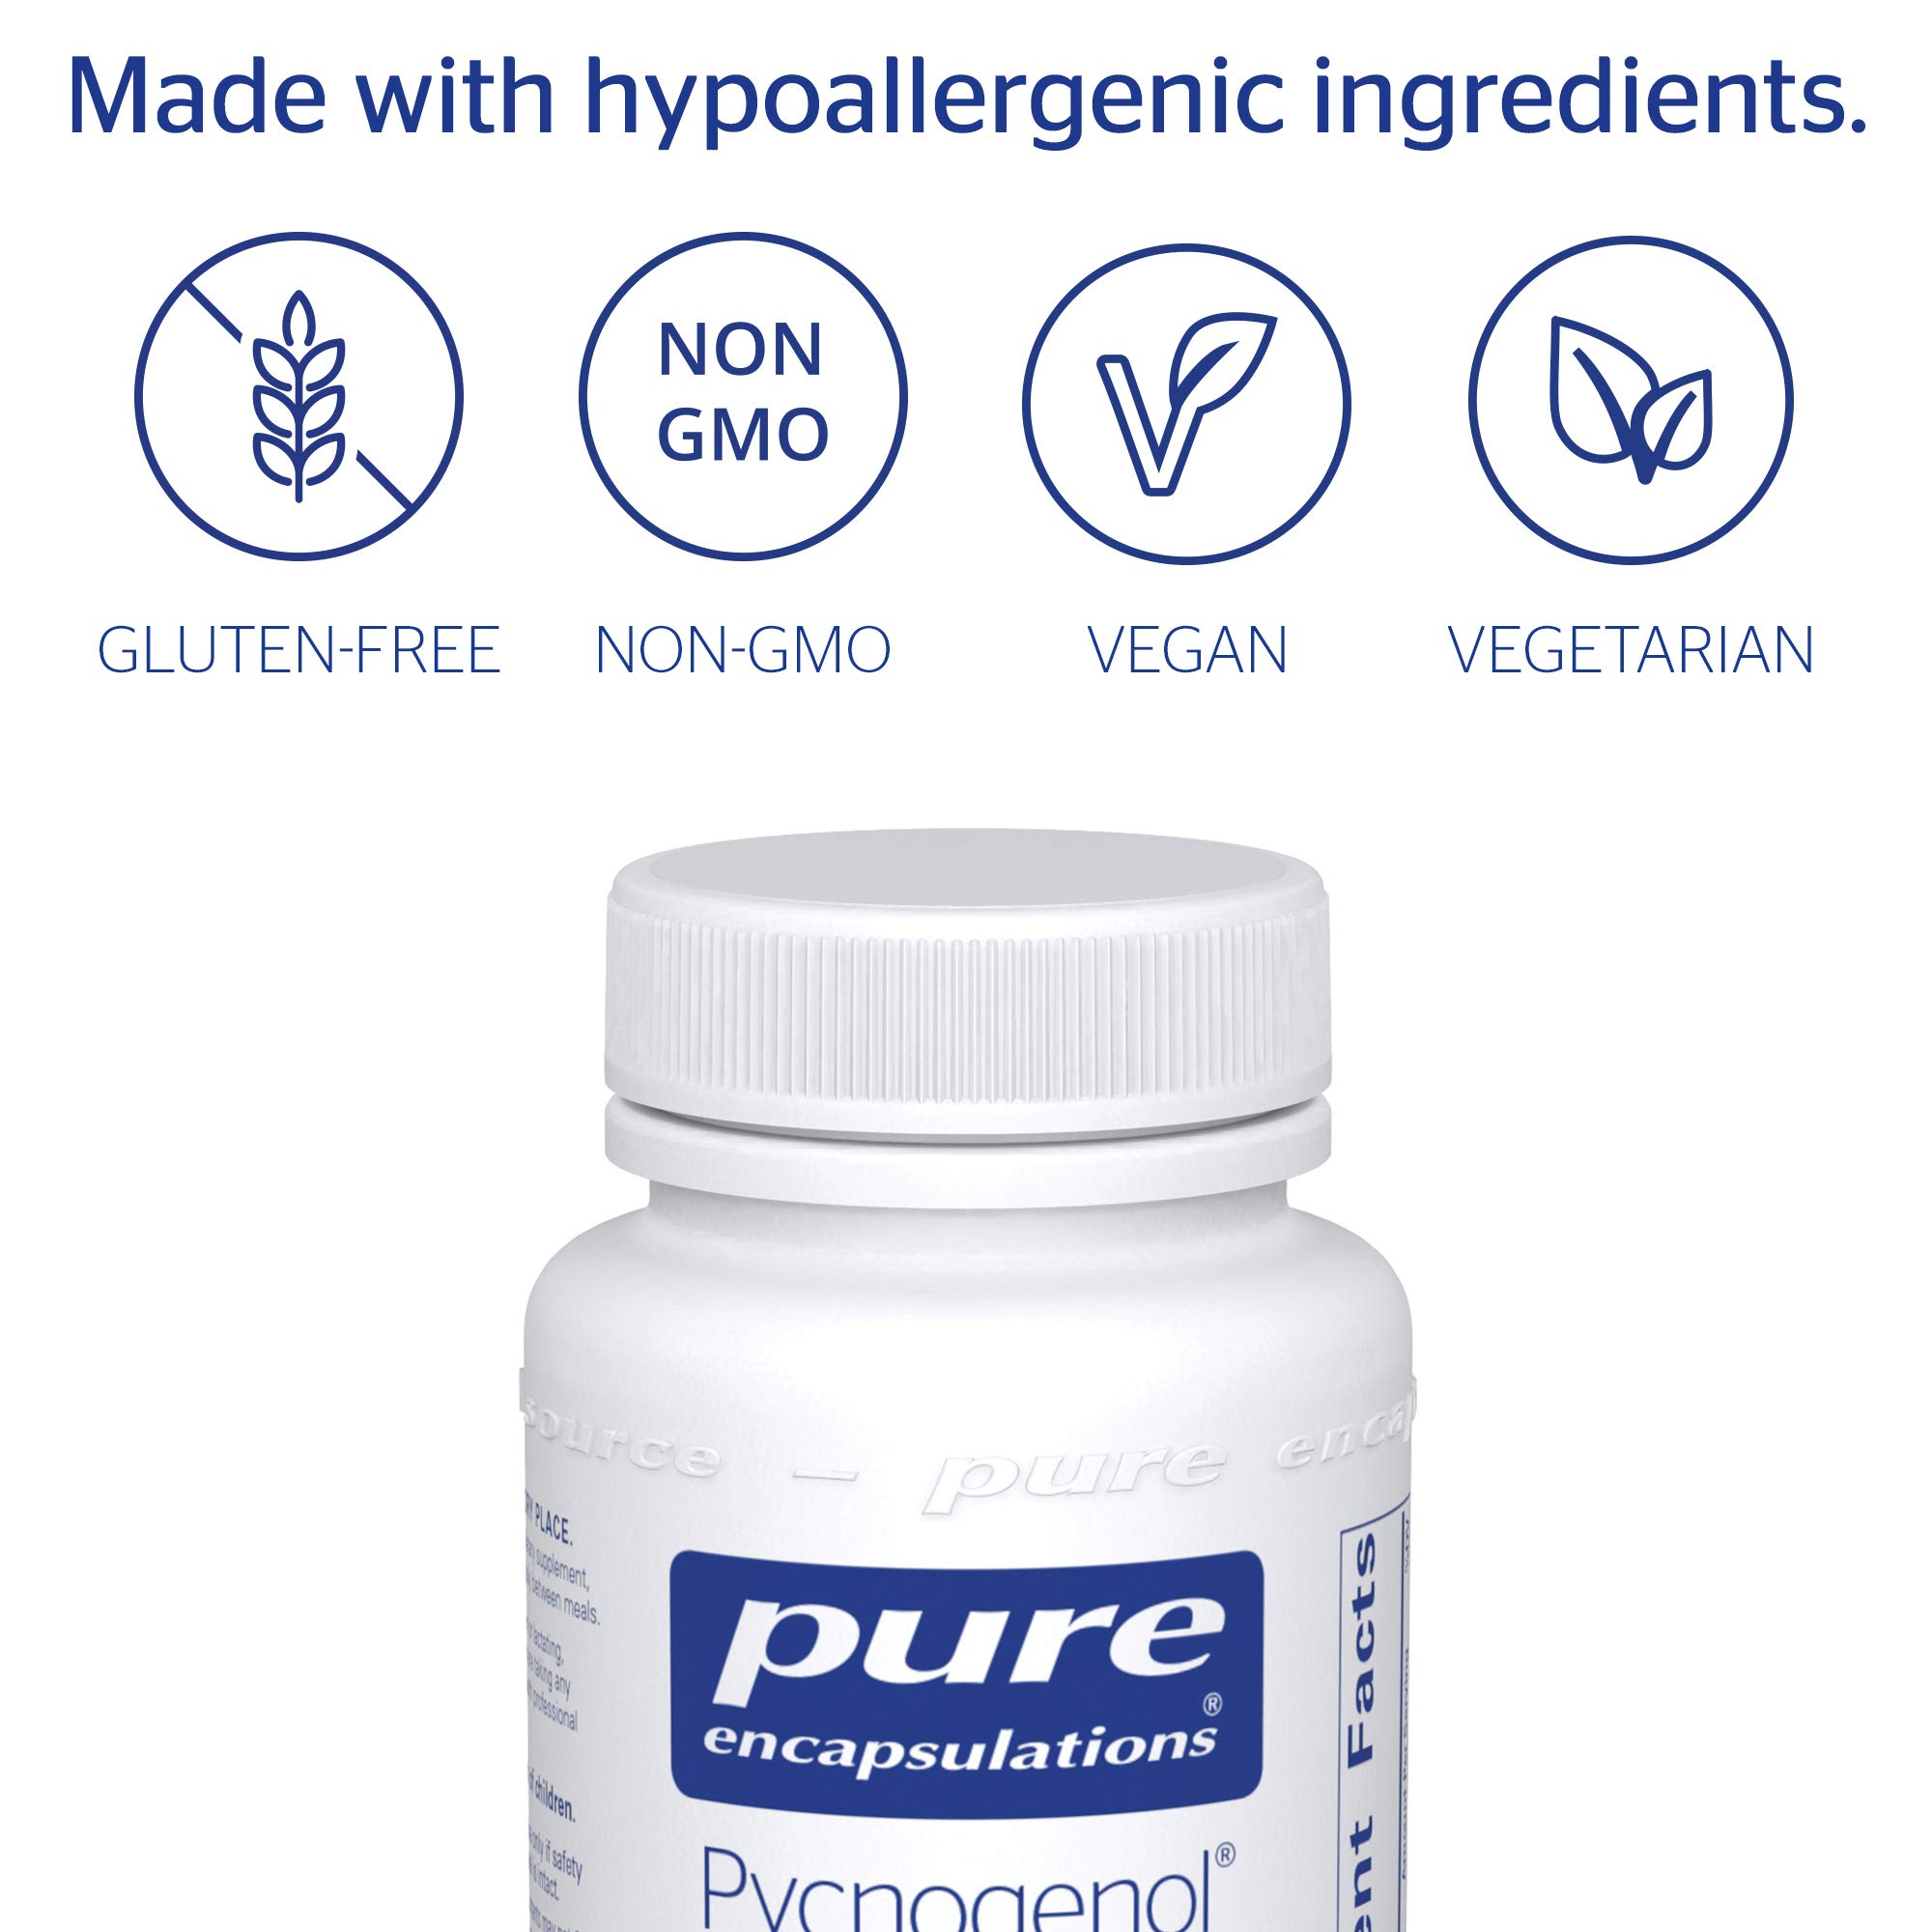 Pure Encapsulations - Pycnogenol 50 mg - Hypoallergenic Supplement to Promote Vascular Health and Provide Antioxidant Support - 120 Capsules by Pure Encapsulations (Image #4)